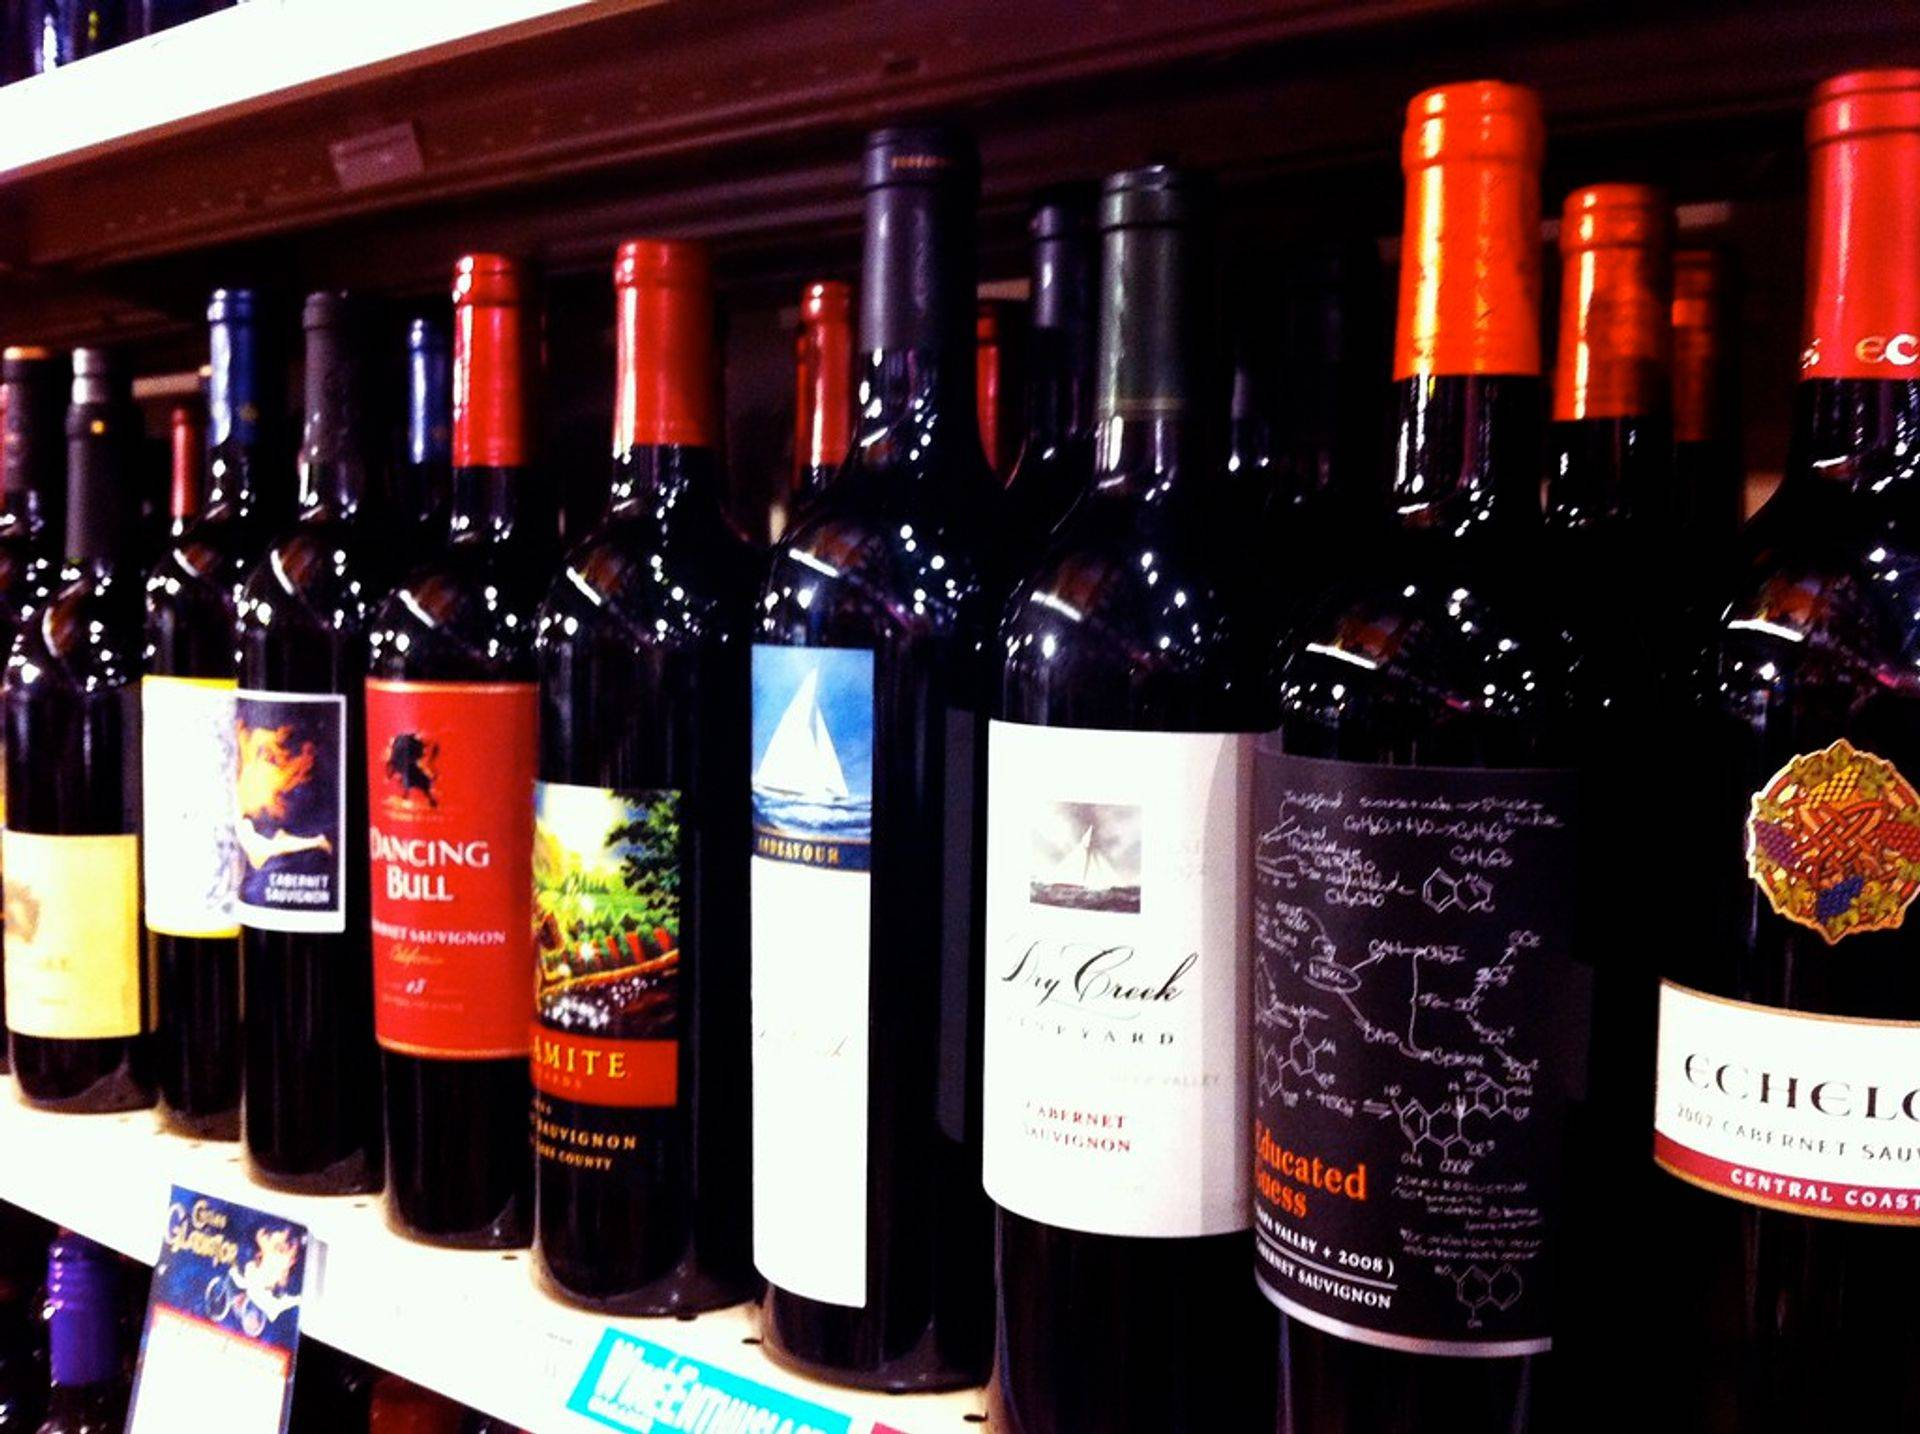 Wines from California, Georgia, South America, Oregon and more